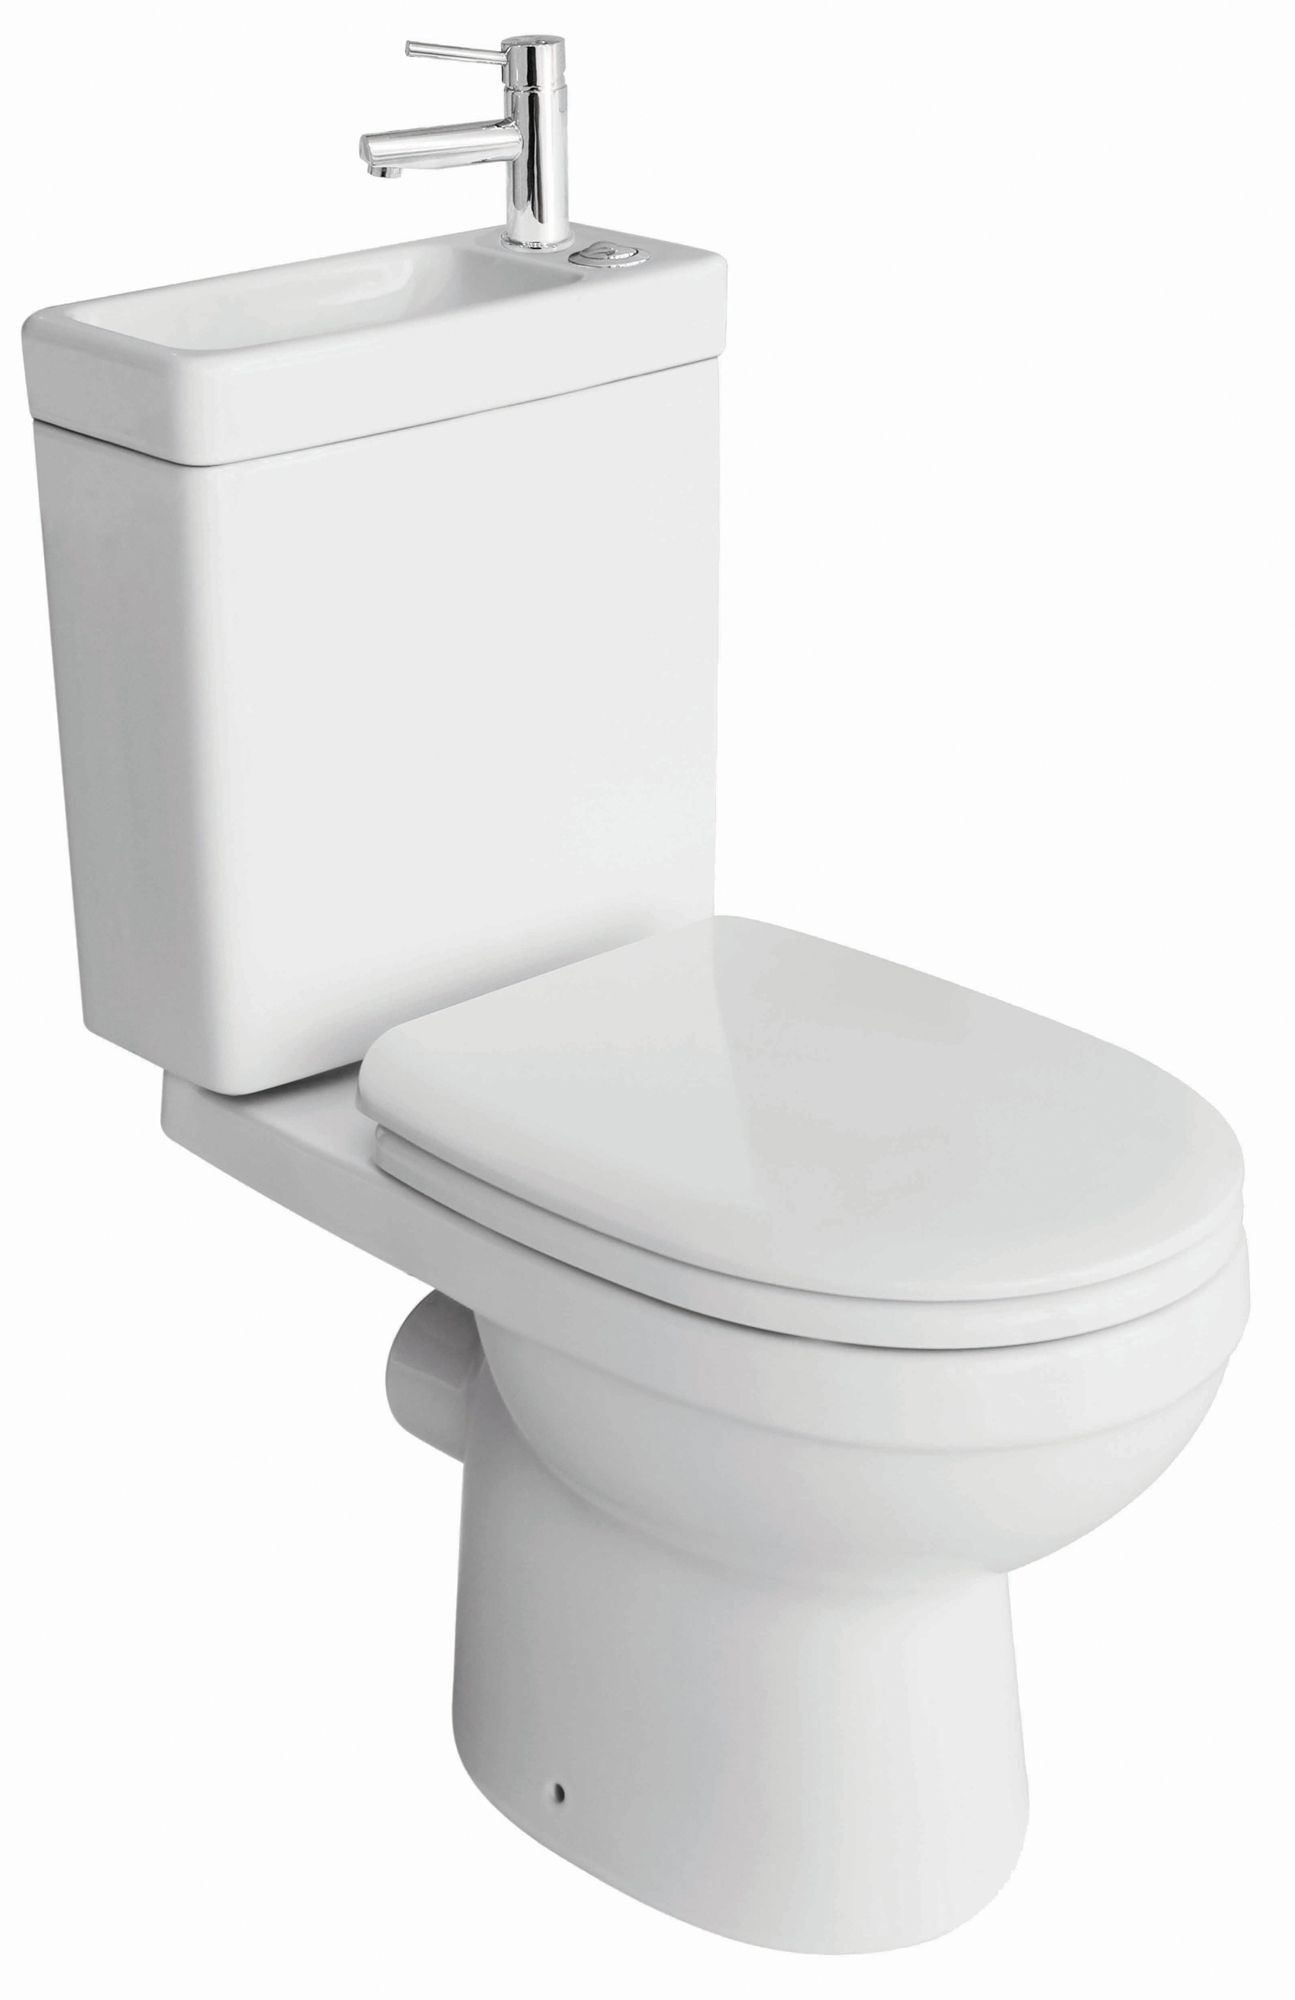 Cooke Lewis Duetto Close Coupled Toilet With Integrated